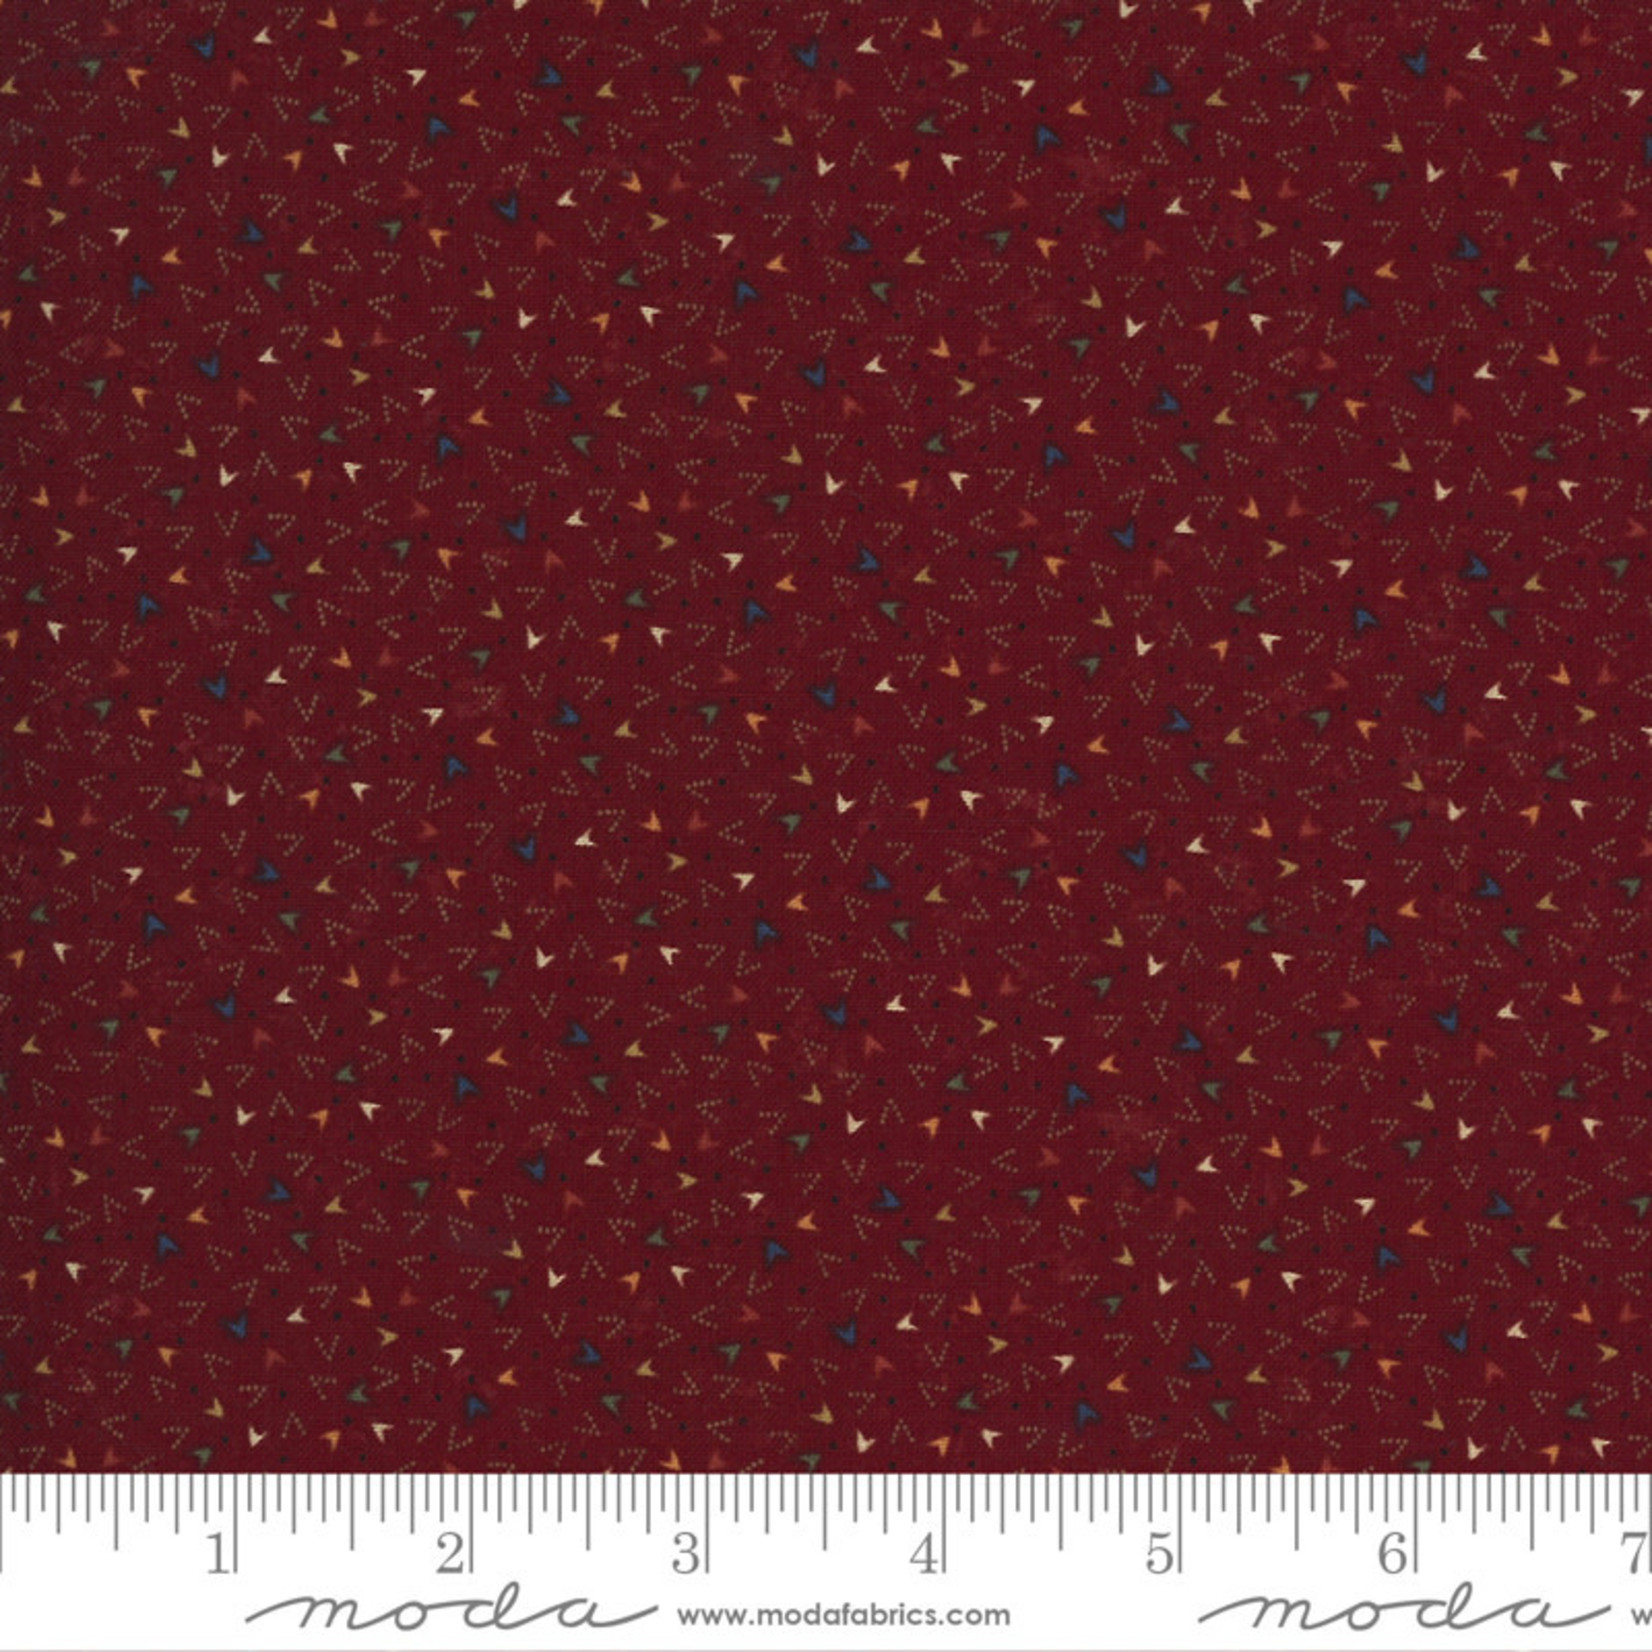 Kansas Troubles Quilters Prairie Dreams, Arrowheads, Red 9657 13 $0.20 per cm or $20/m